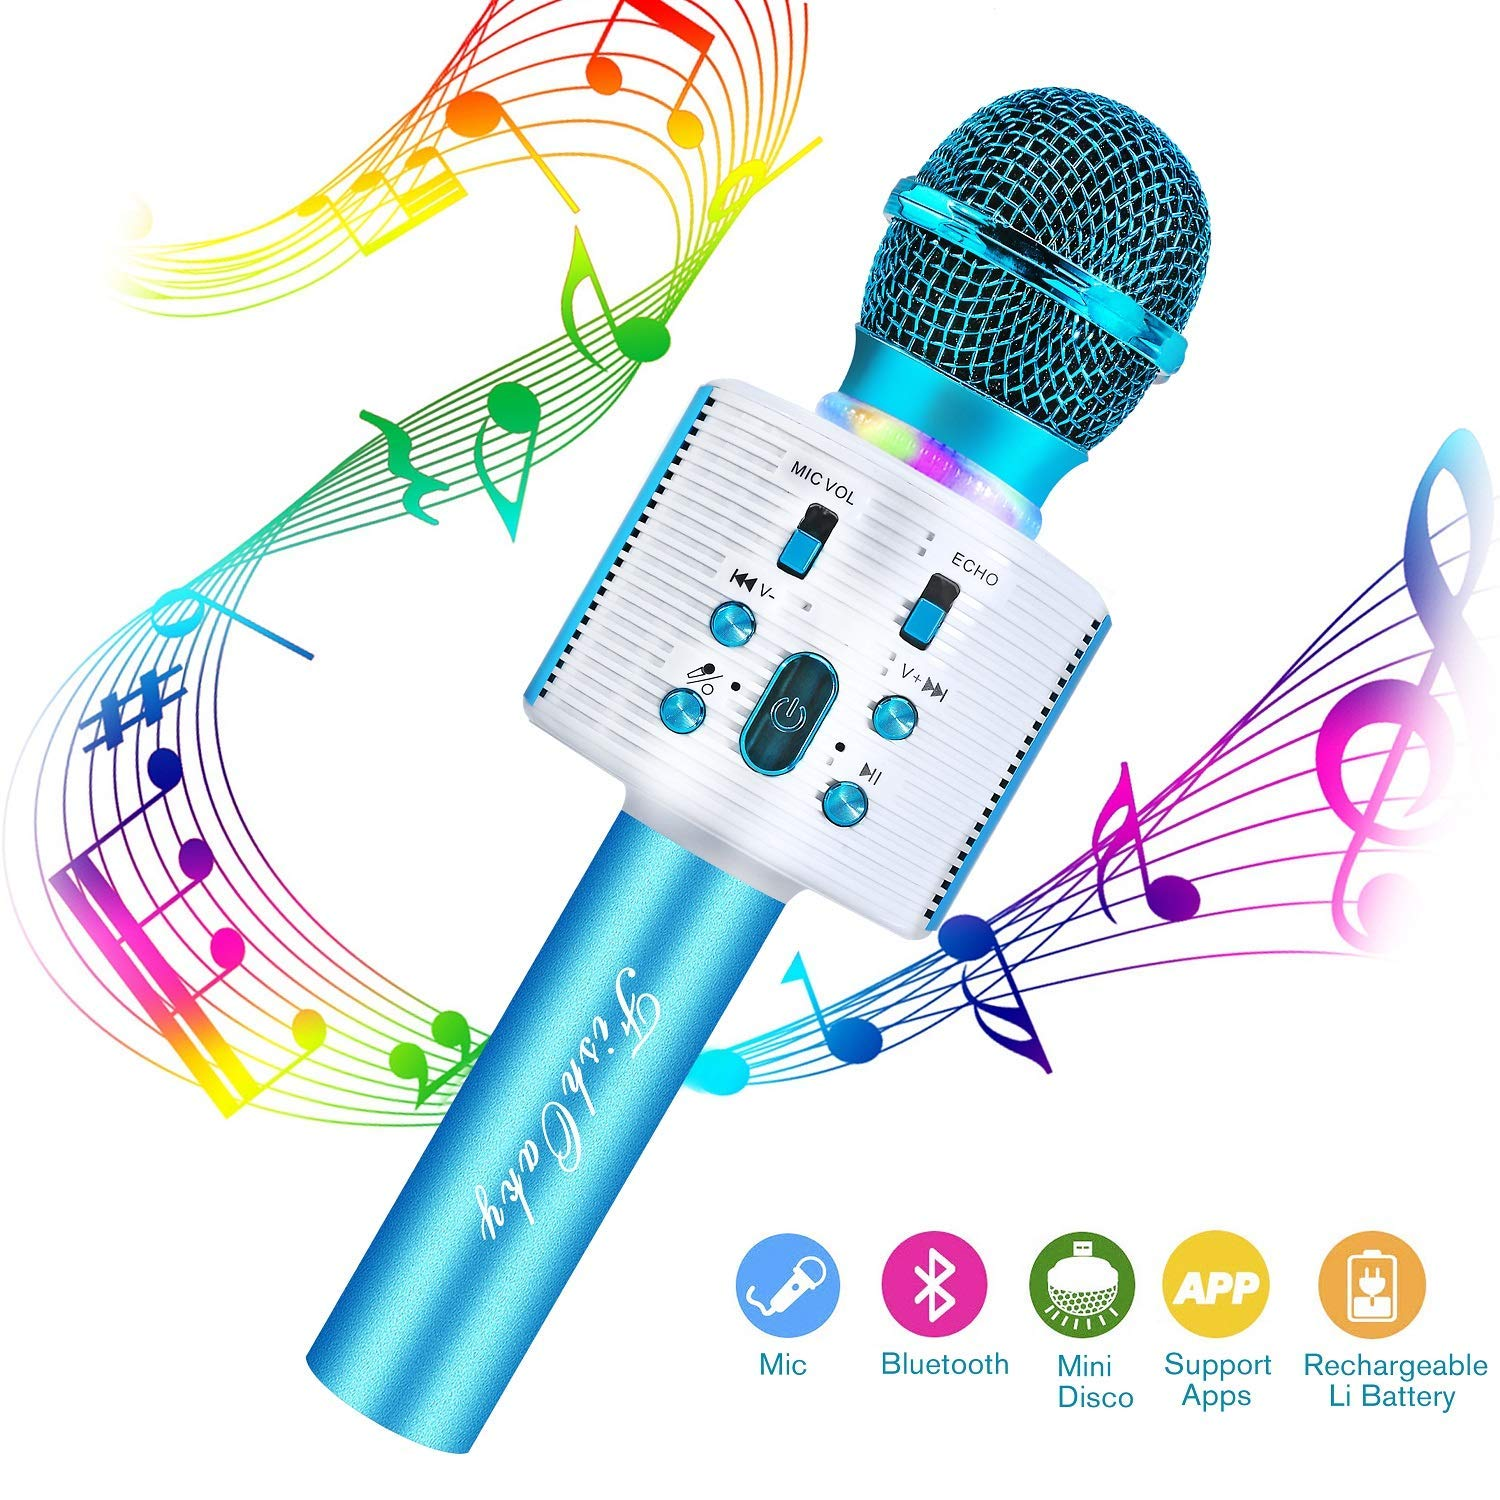 FishOaky Wireless Bluetooth Karaoke Microphone, Portable Kids Microphone Karaoke Player Speaker with LED & Music Singing Voice Recording for Home KTV Kids Outdoor Birthday Party by FishOaky